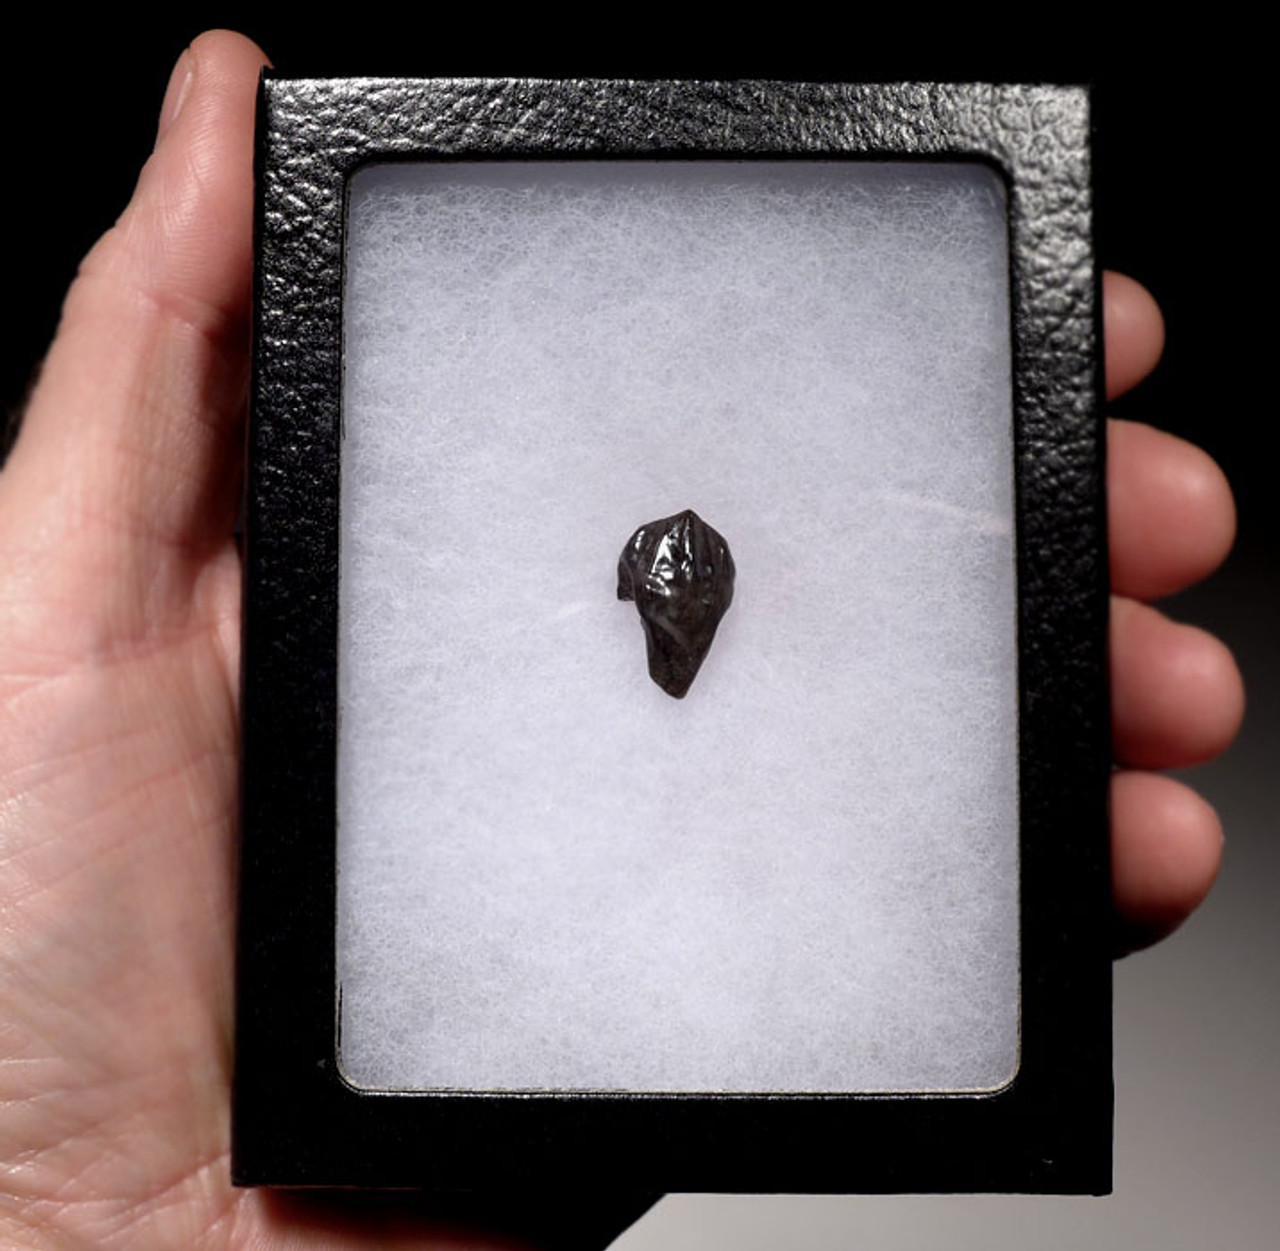 TOP GRADE TRICERATOPS DINOSAUR TOOTH WITH PARTIAL ROOT AND INTACT CROWN *DT70-012